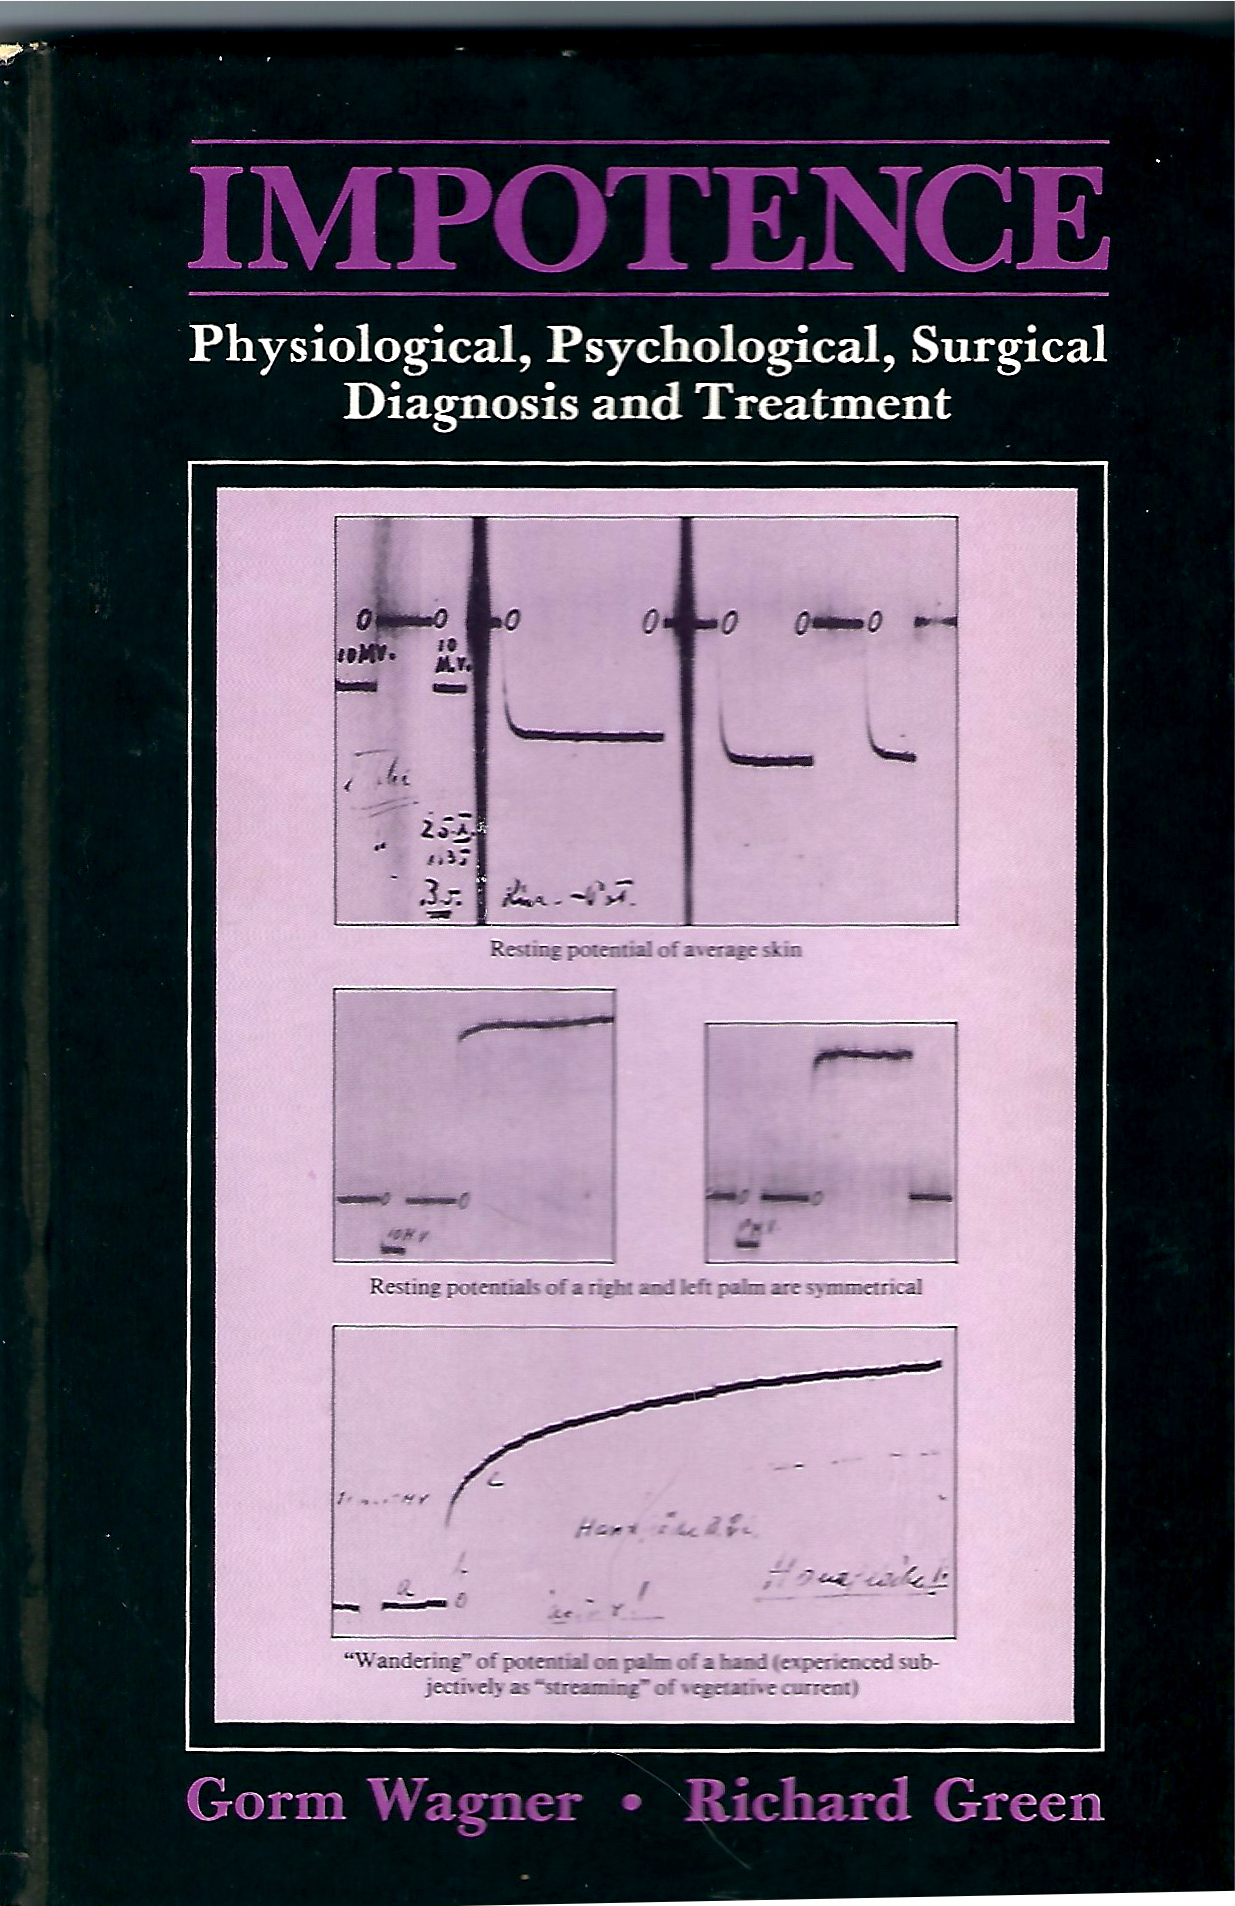 Impotence: Physiological, Psychological, Surgical Diagnosis and Treatment - Gorm Wagner & Richard Green1981